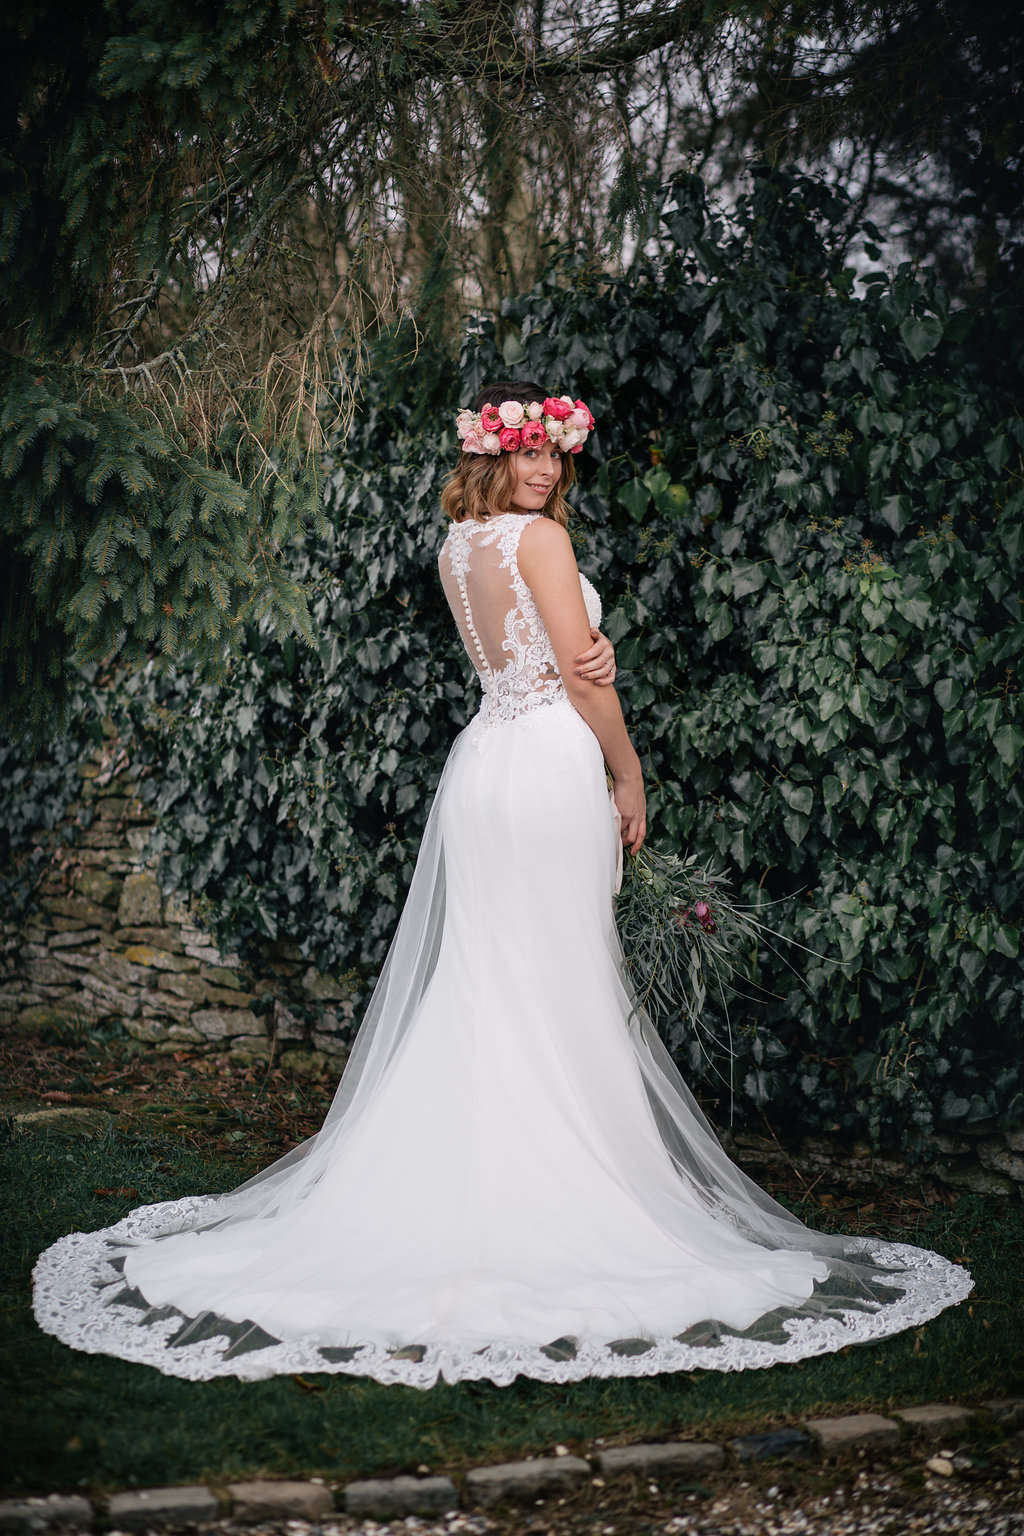 Illusion Lace Dress Gown Bride Bridal Train Lapstone Barn Wedding Ideas Cotswolds Katie Hamilton Photography